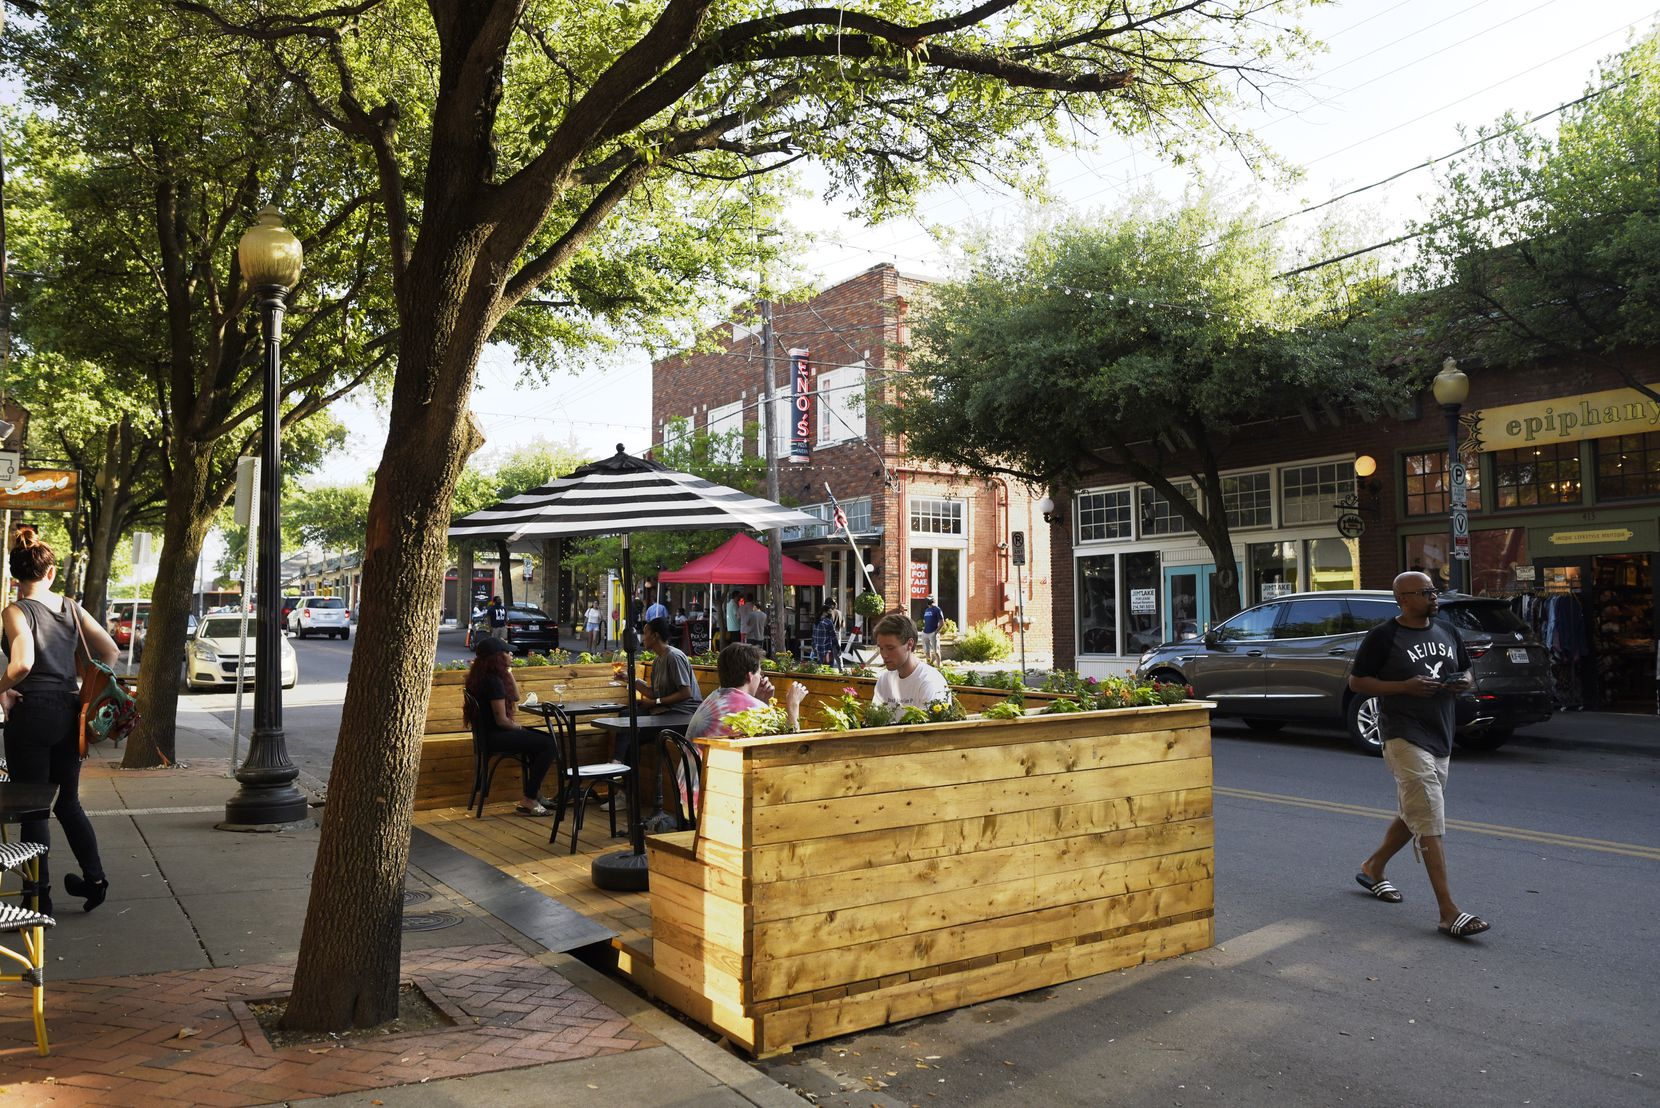 A temporary seating area outside of Revelers Hall on Bishop Avenue in Dallas, Friday, May 15, 2020. Co-owner Jason Roberts said the built structure is an example of a more semi-permanent parklet, or outdoor seating area that spills out onto a street.